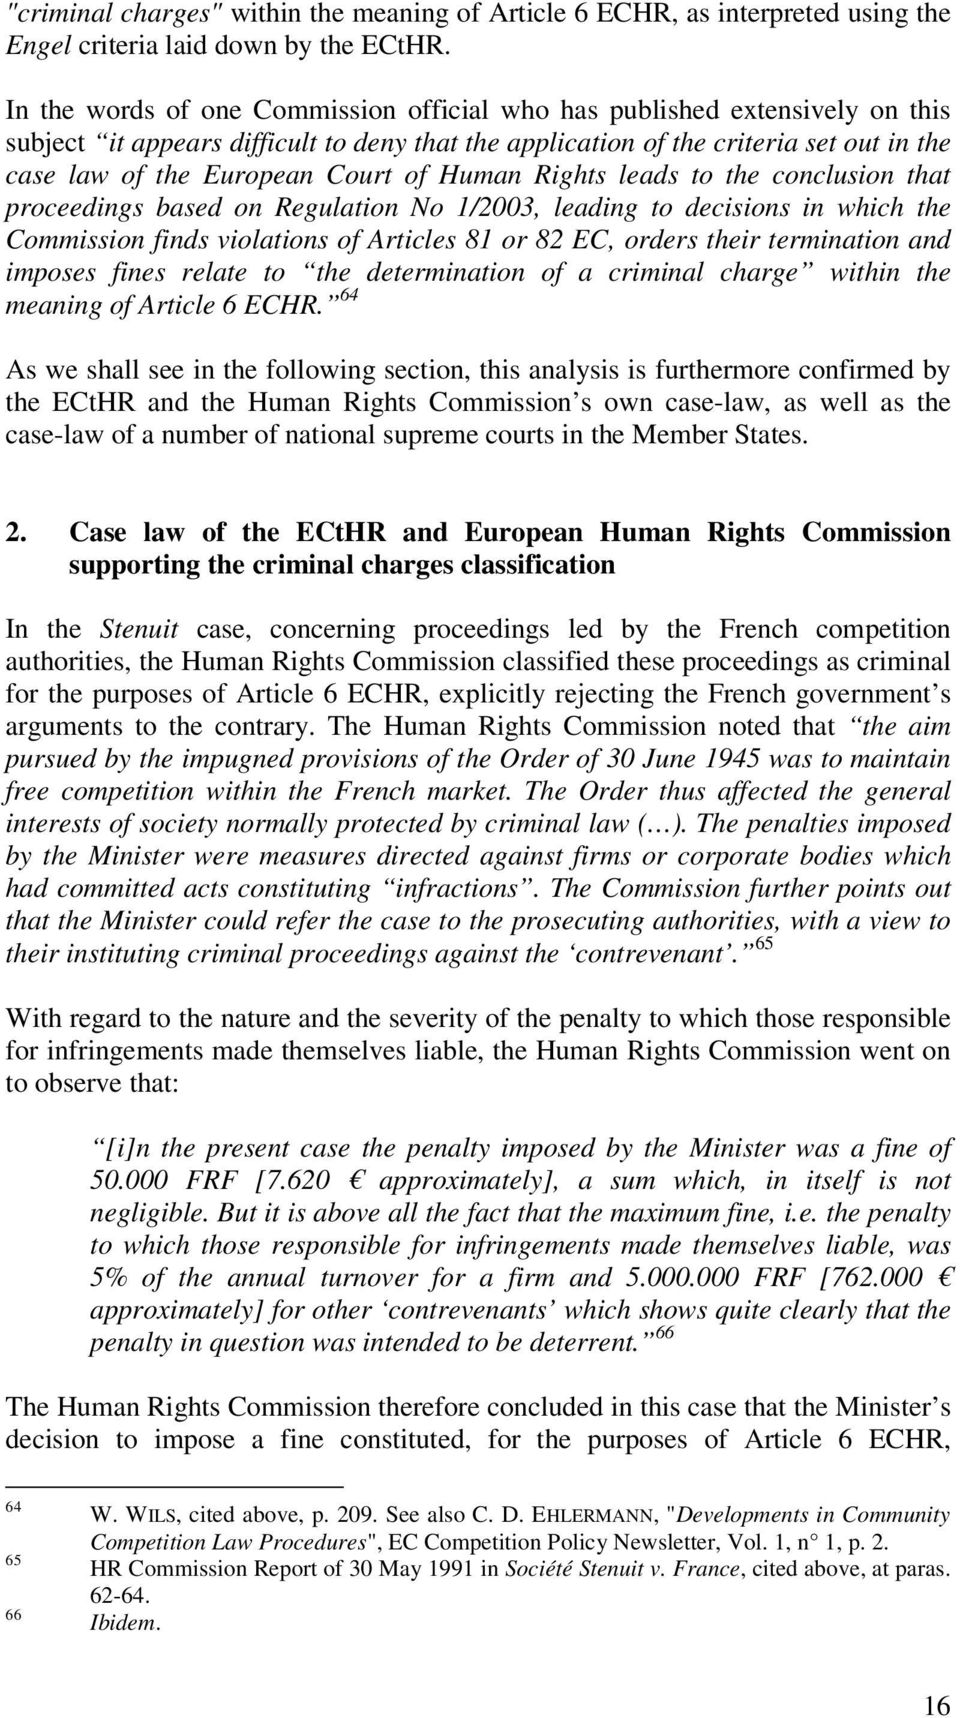 of Human Rights leads to the conclusion that proceedings based on Regulation No 1/2003, leading to decisions in which the Commission finds violations of Articles 81 or 82 EC, orders their termination